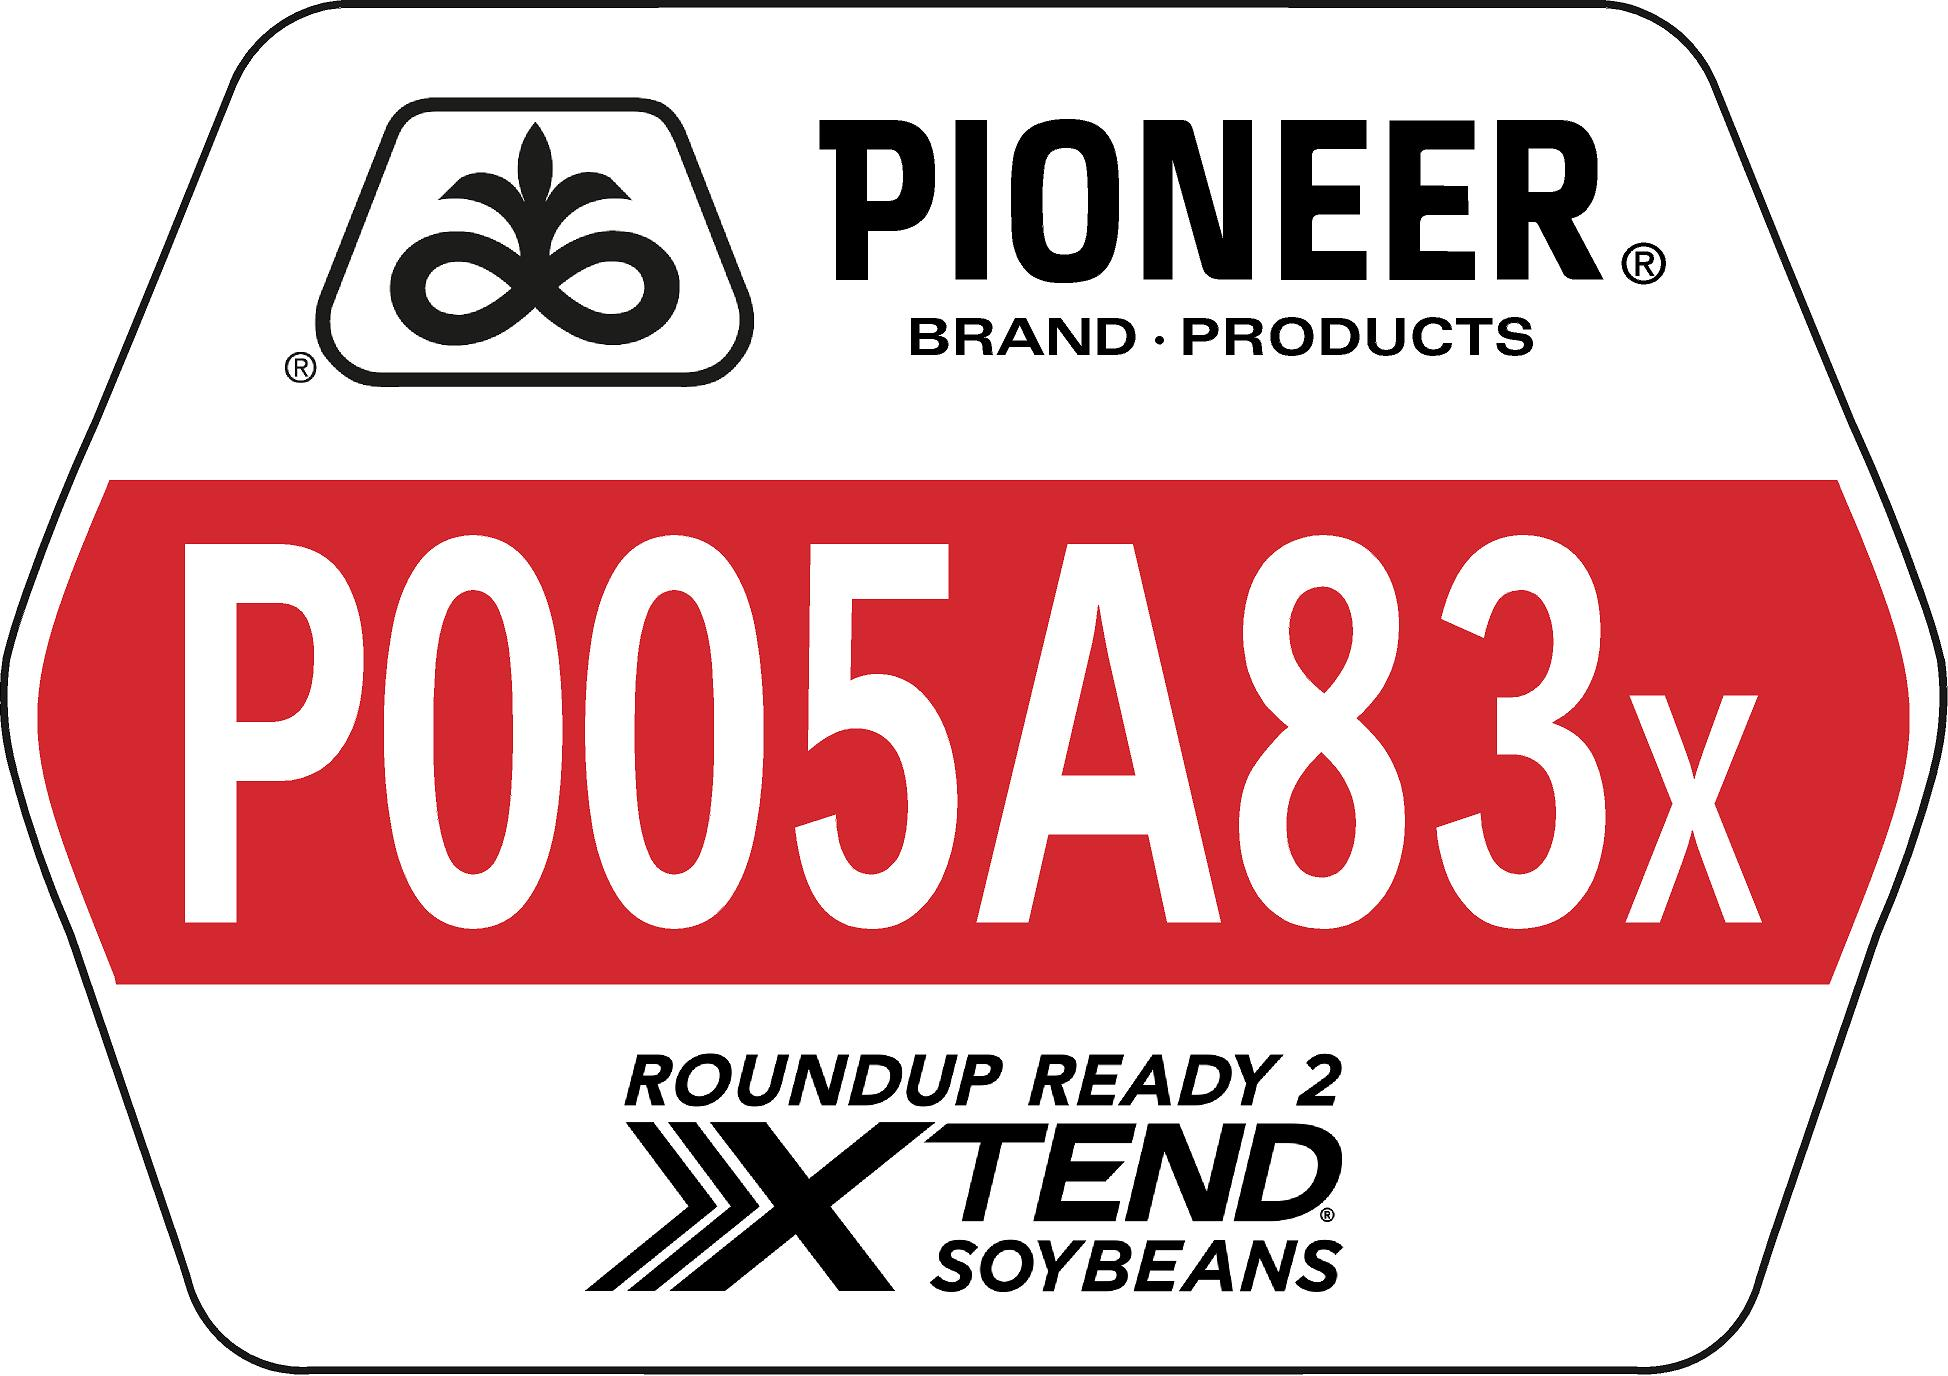 Field Sign - Soybeans - P005A83X